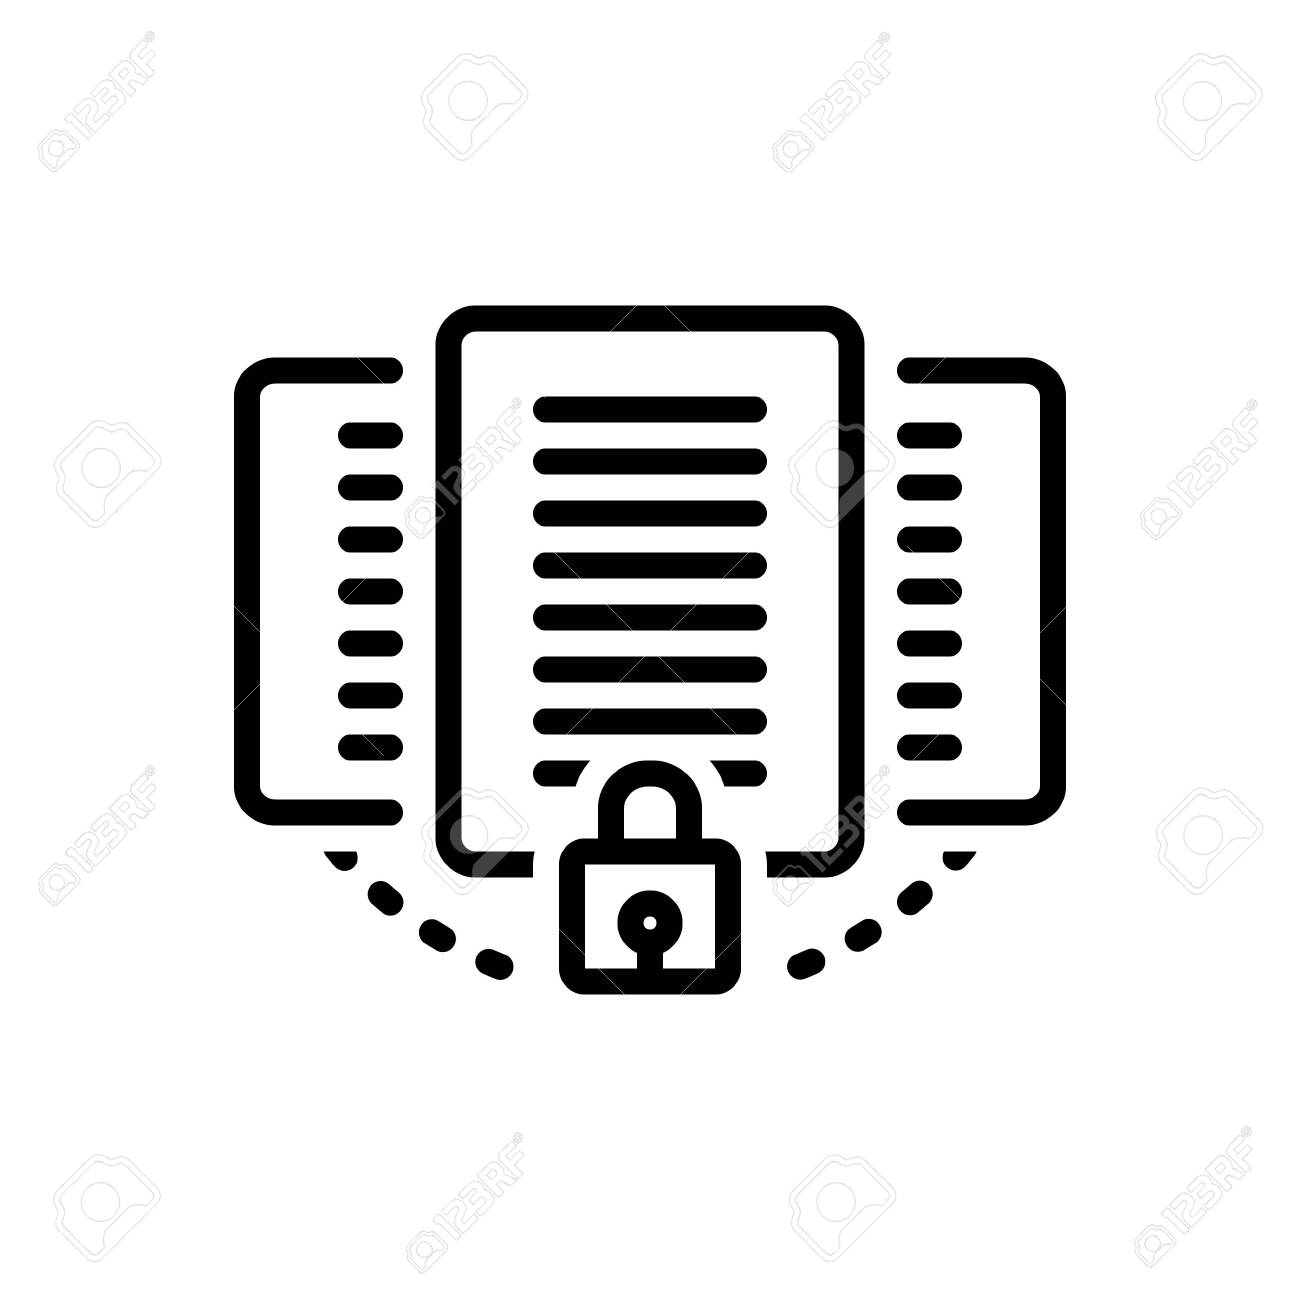 Icon for document,protection - 125806206